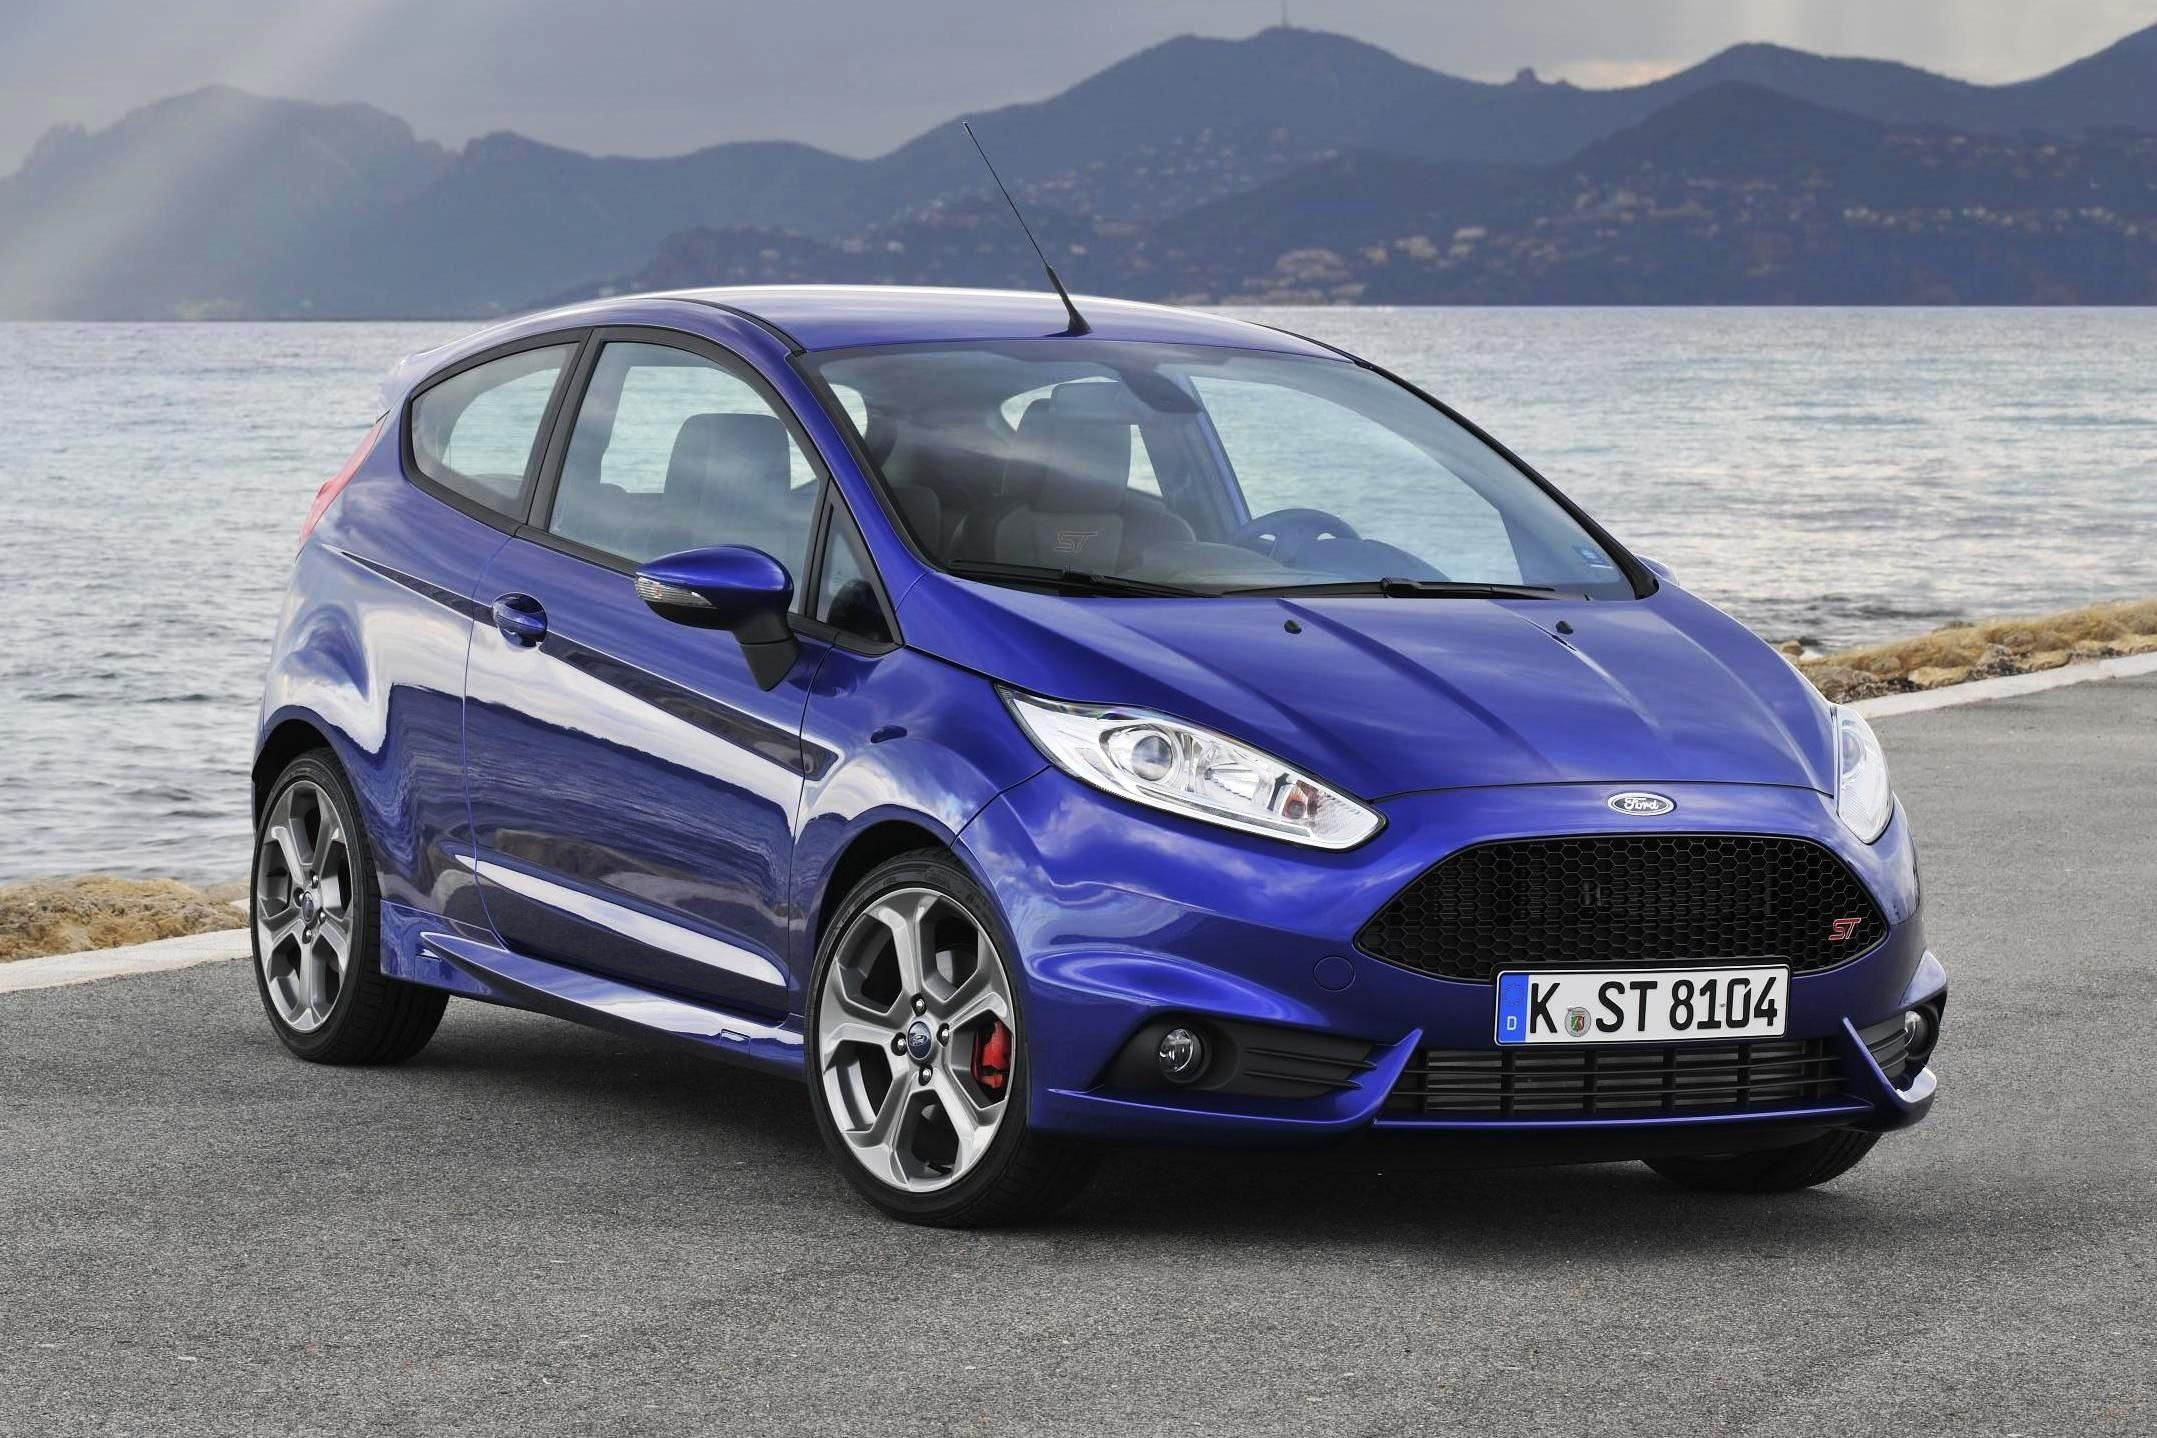 2015 ford fiesta st amazing in everyway the fiesta st delivers a sense of enjoyment excitement and freedom golf gti stand aside